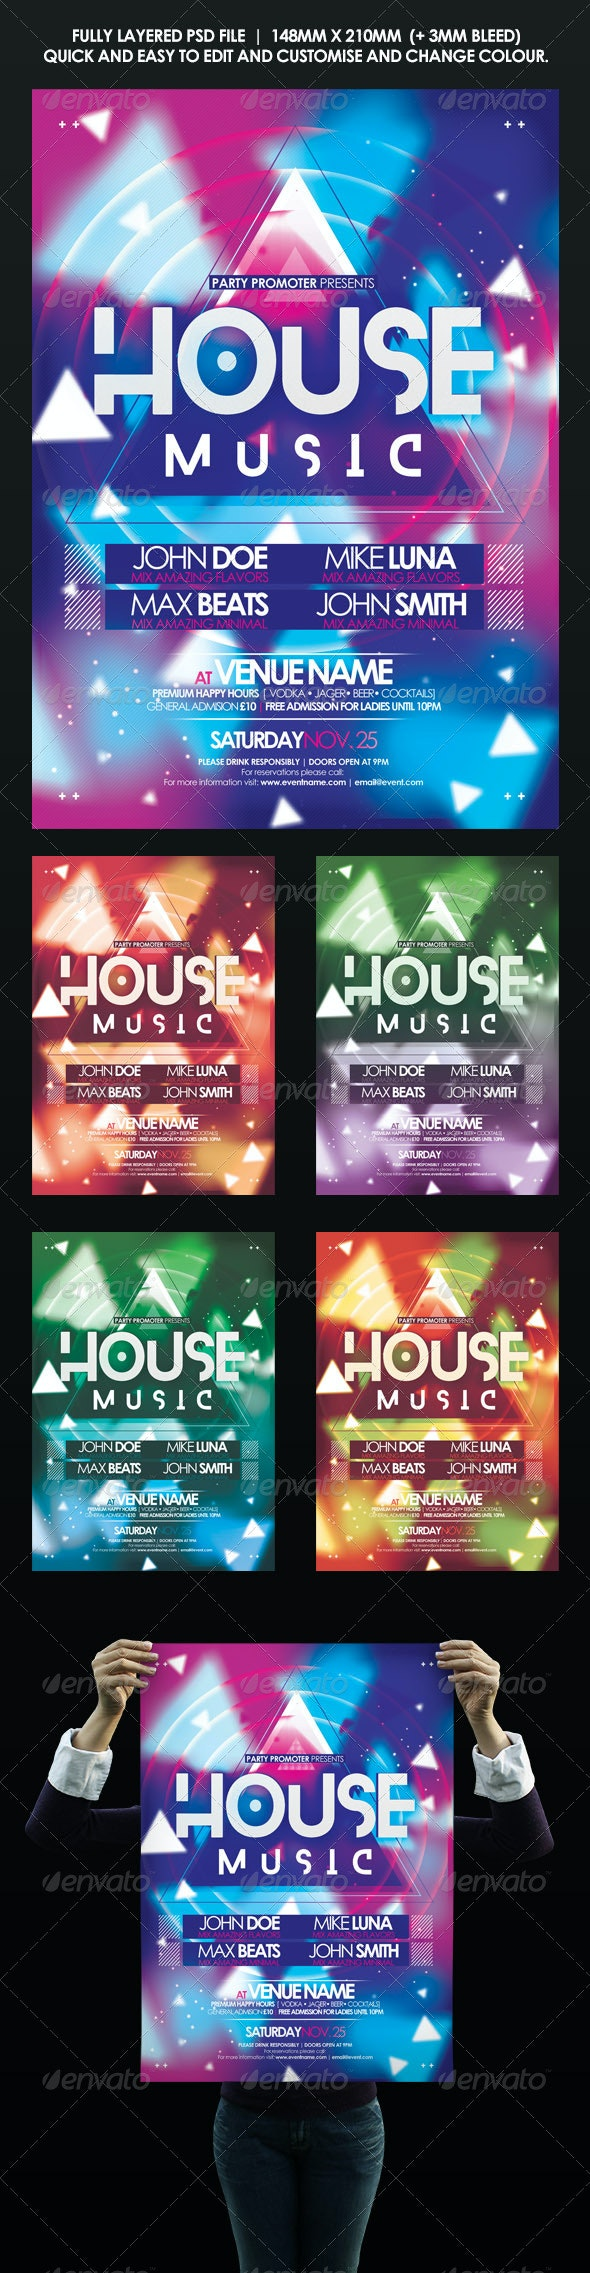 House Music Event Flyer | Poster - Clubs & Parties Events